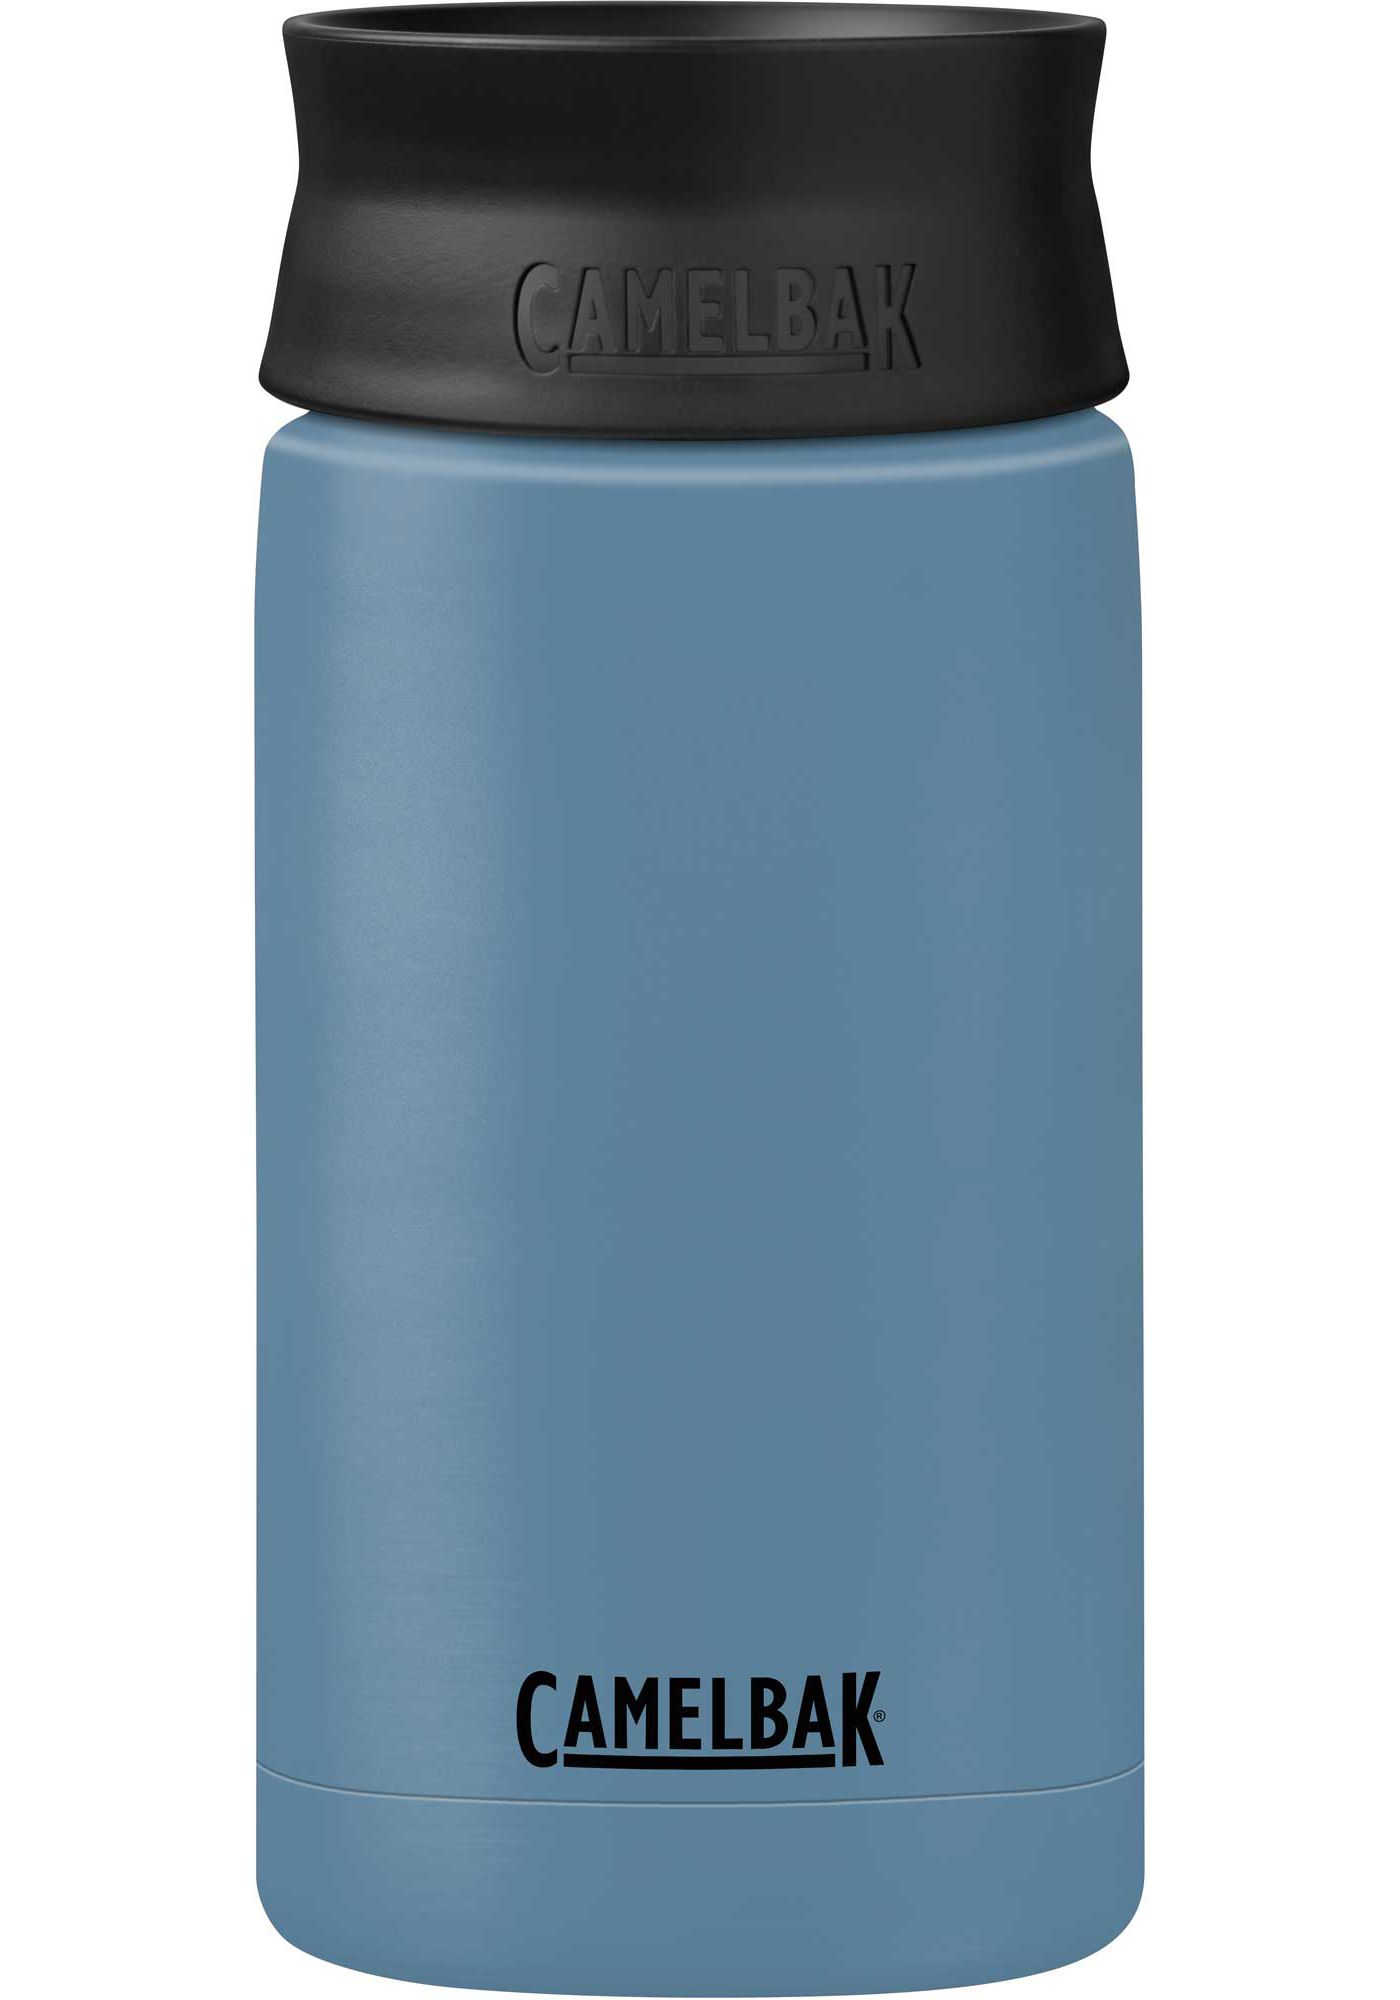 CamelBak Hot Cap 12 oz. Insulated Stainless Steel Travel Mug